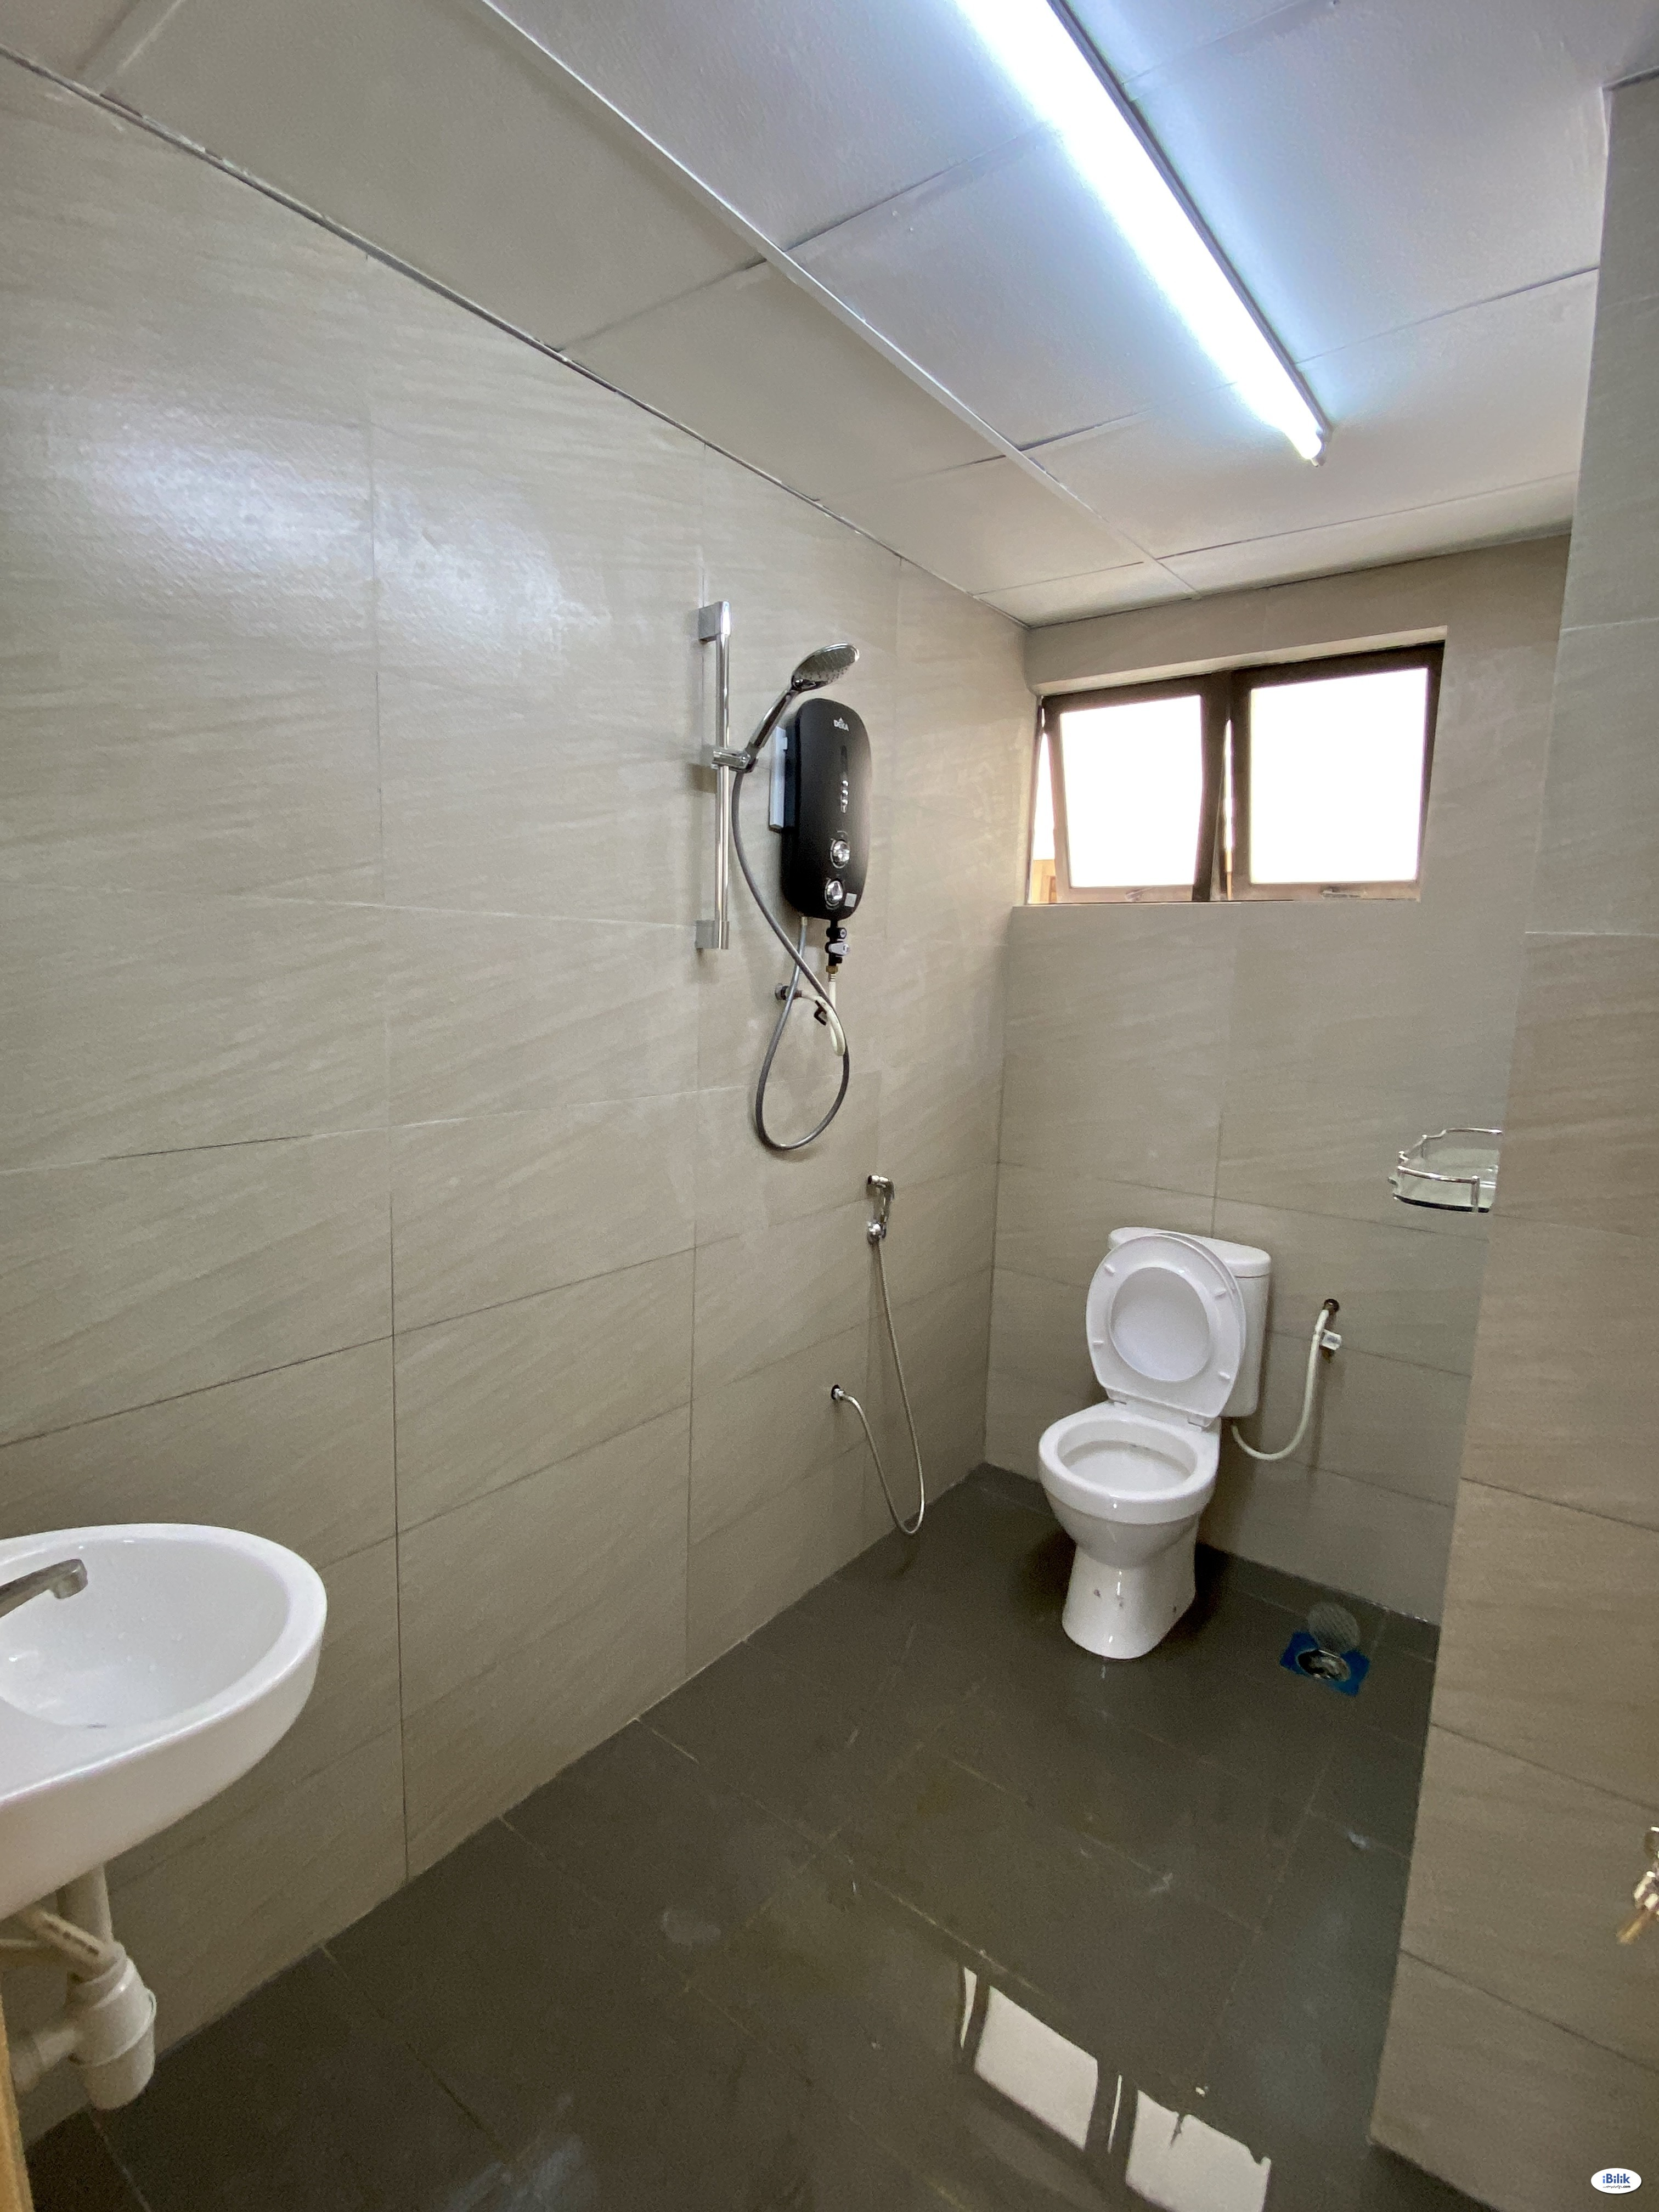 Small room with balcony, female unit, include all utilities, wifi n ac.